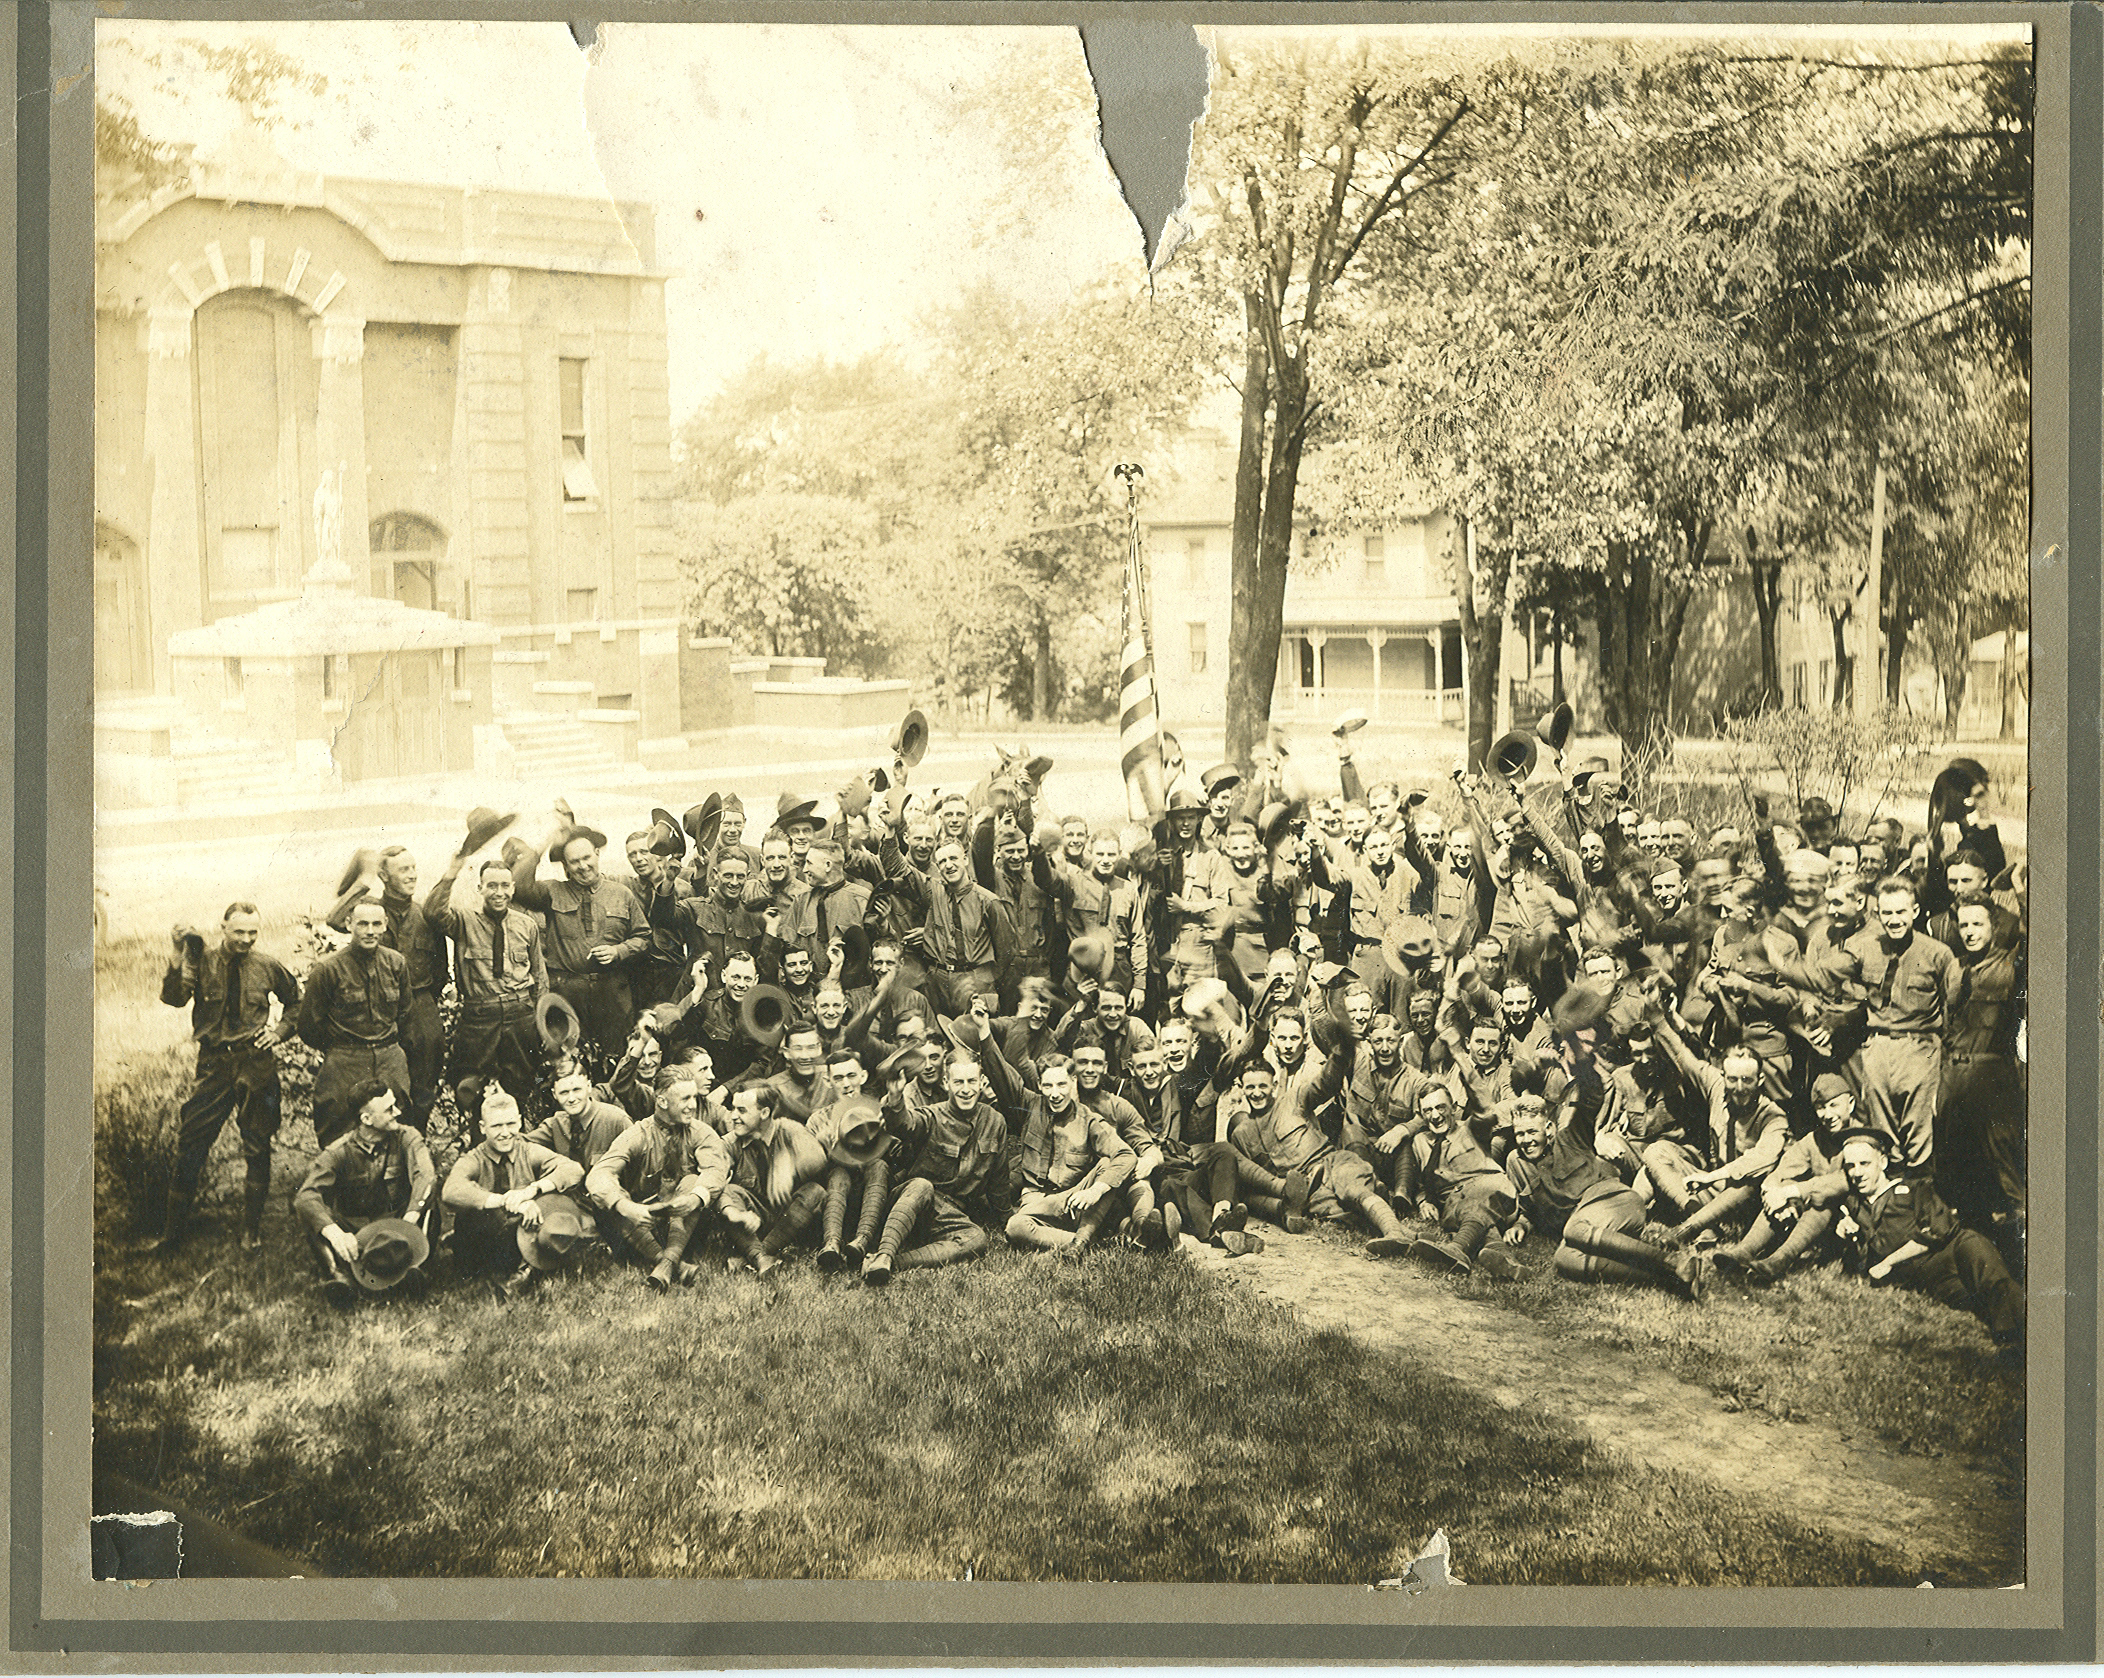 WWI Soldiers Outside of St. Patrick's Church May 31, 1920